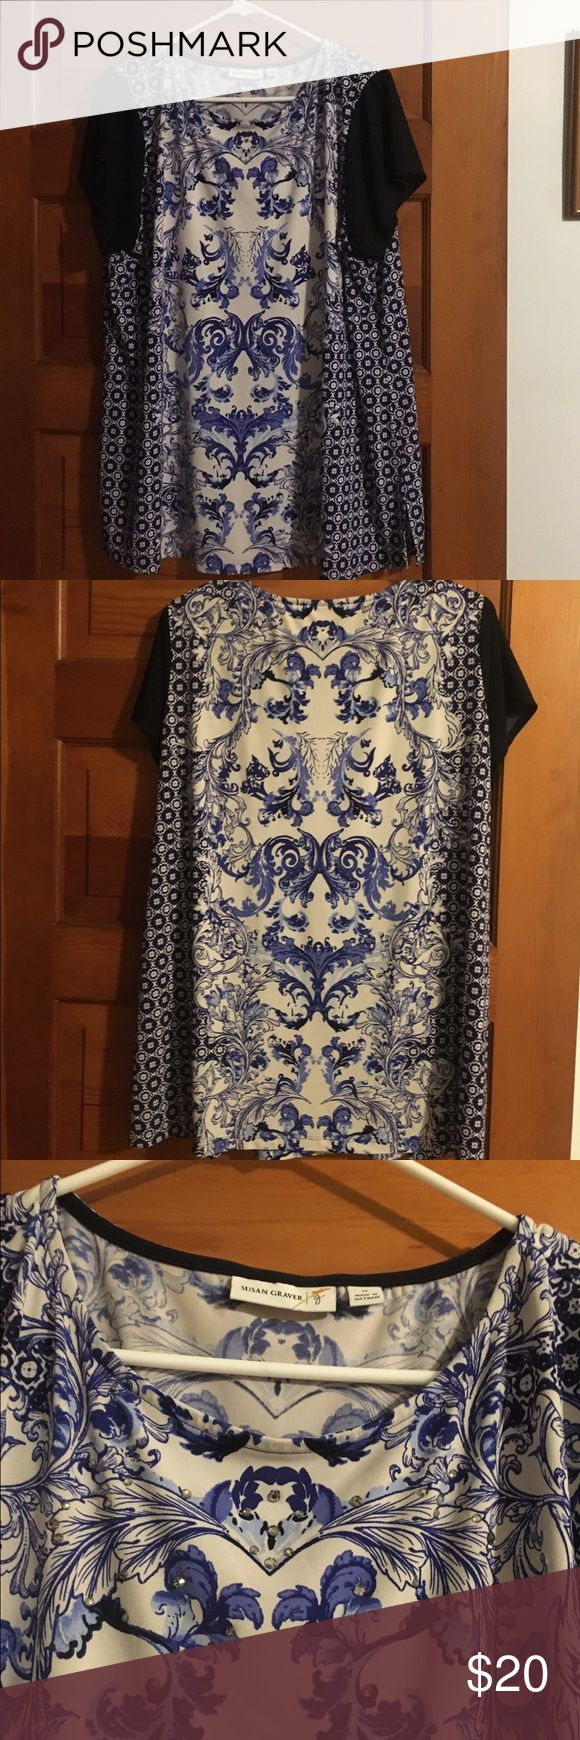 Susan Graver top This navy white/black Paisley design blouse is in like new condition. It has shinning diamond jewels on it in the front near neckline. It Is stretchy 95% polyester 5% spandex. Susan Graver Tops Blouses